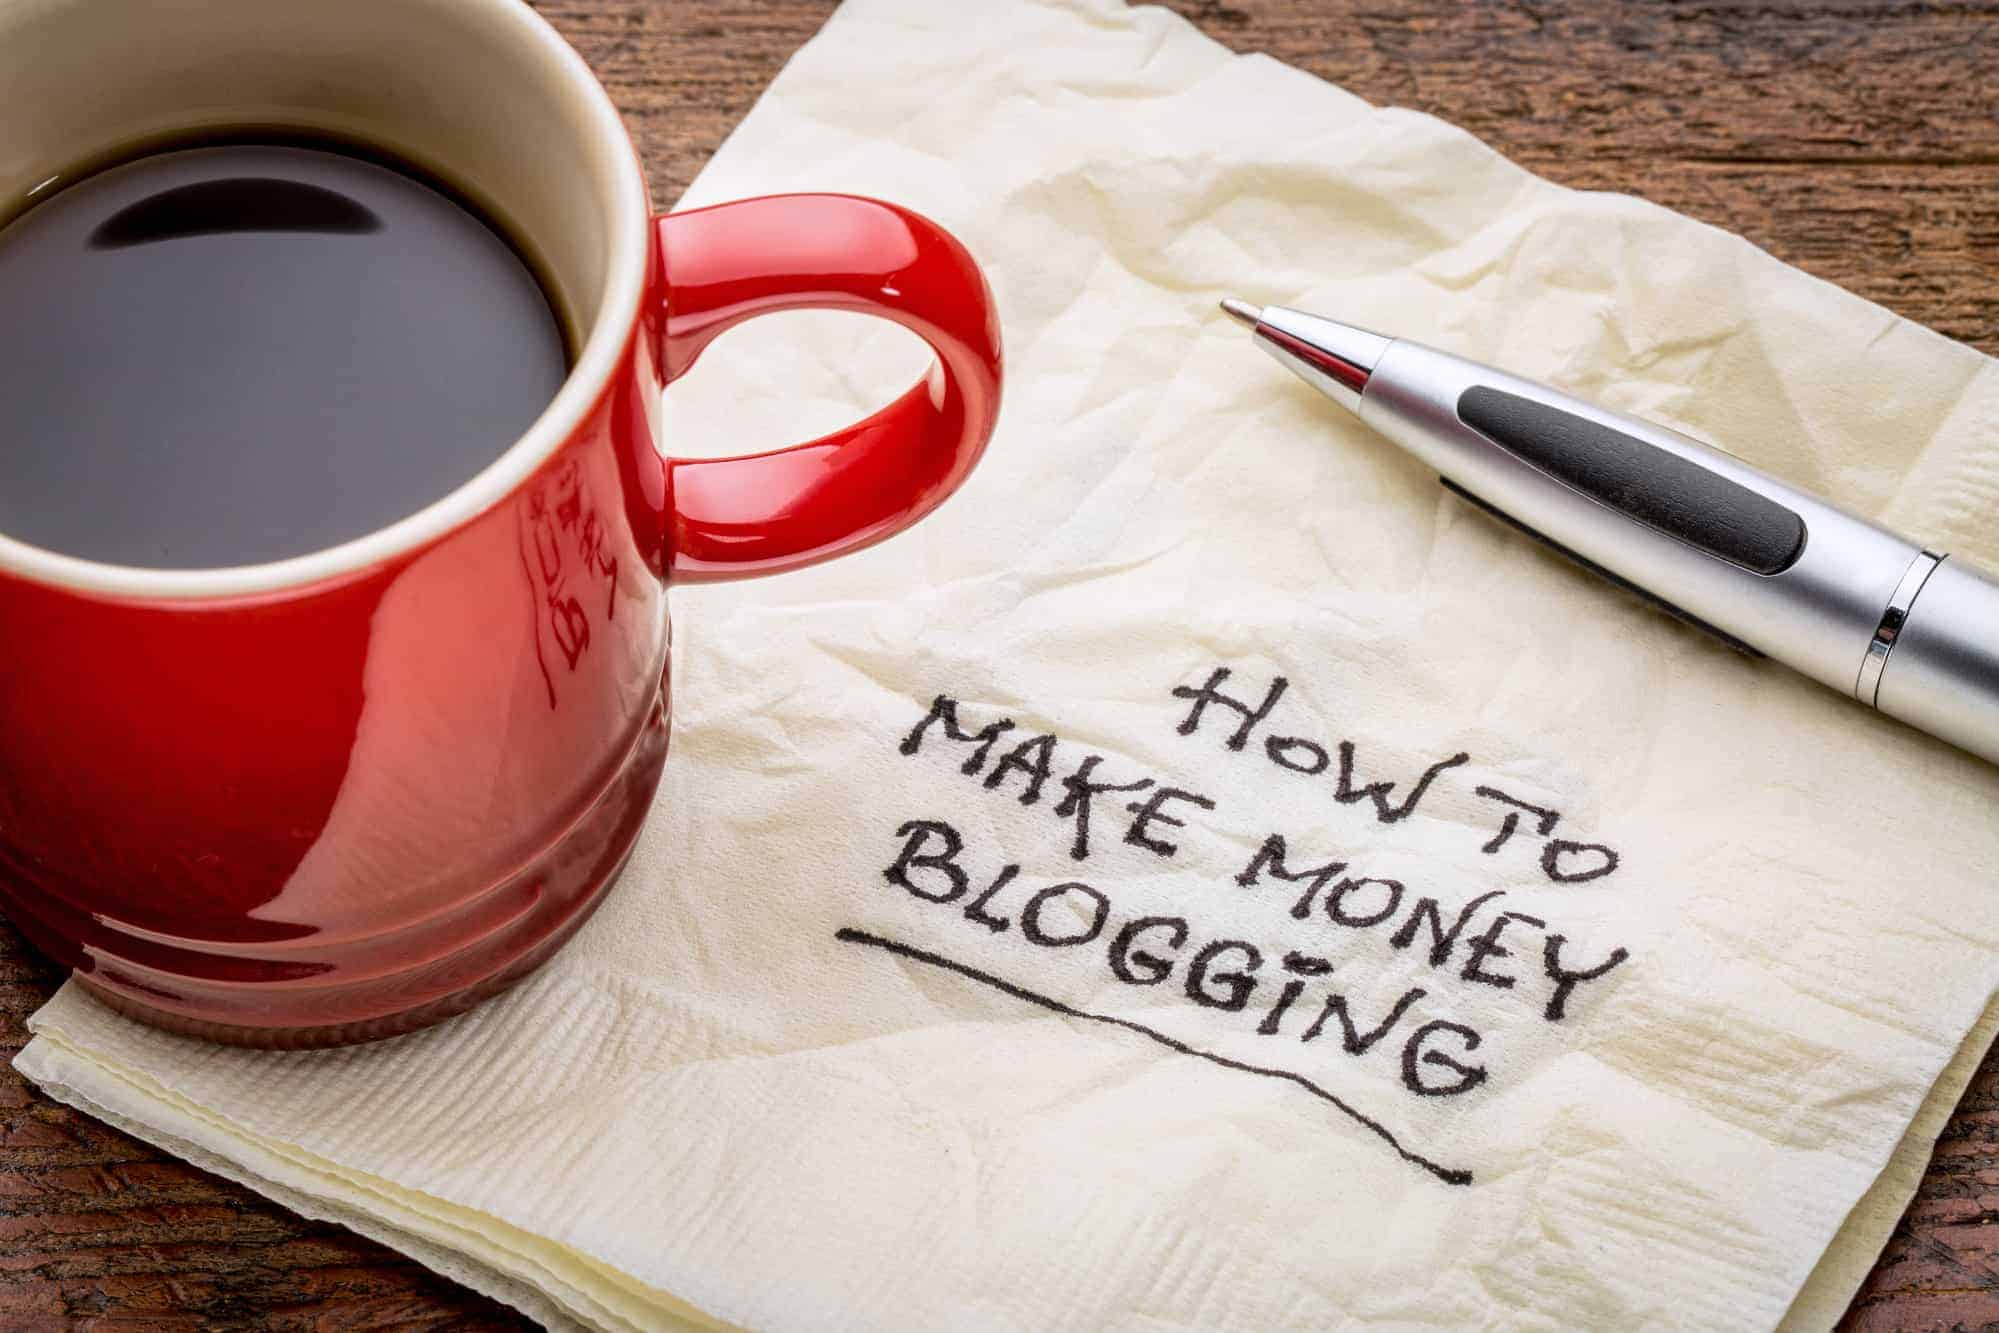 How to Make Money Blogging - Learn the strategies that actually work.